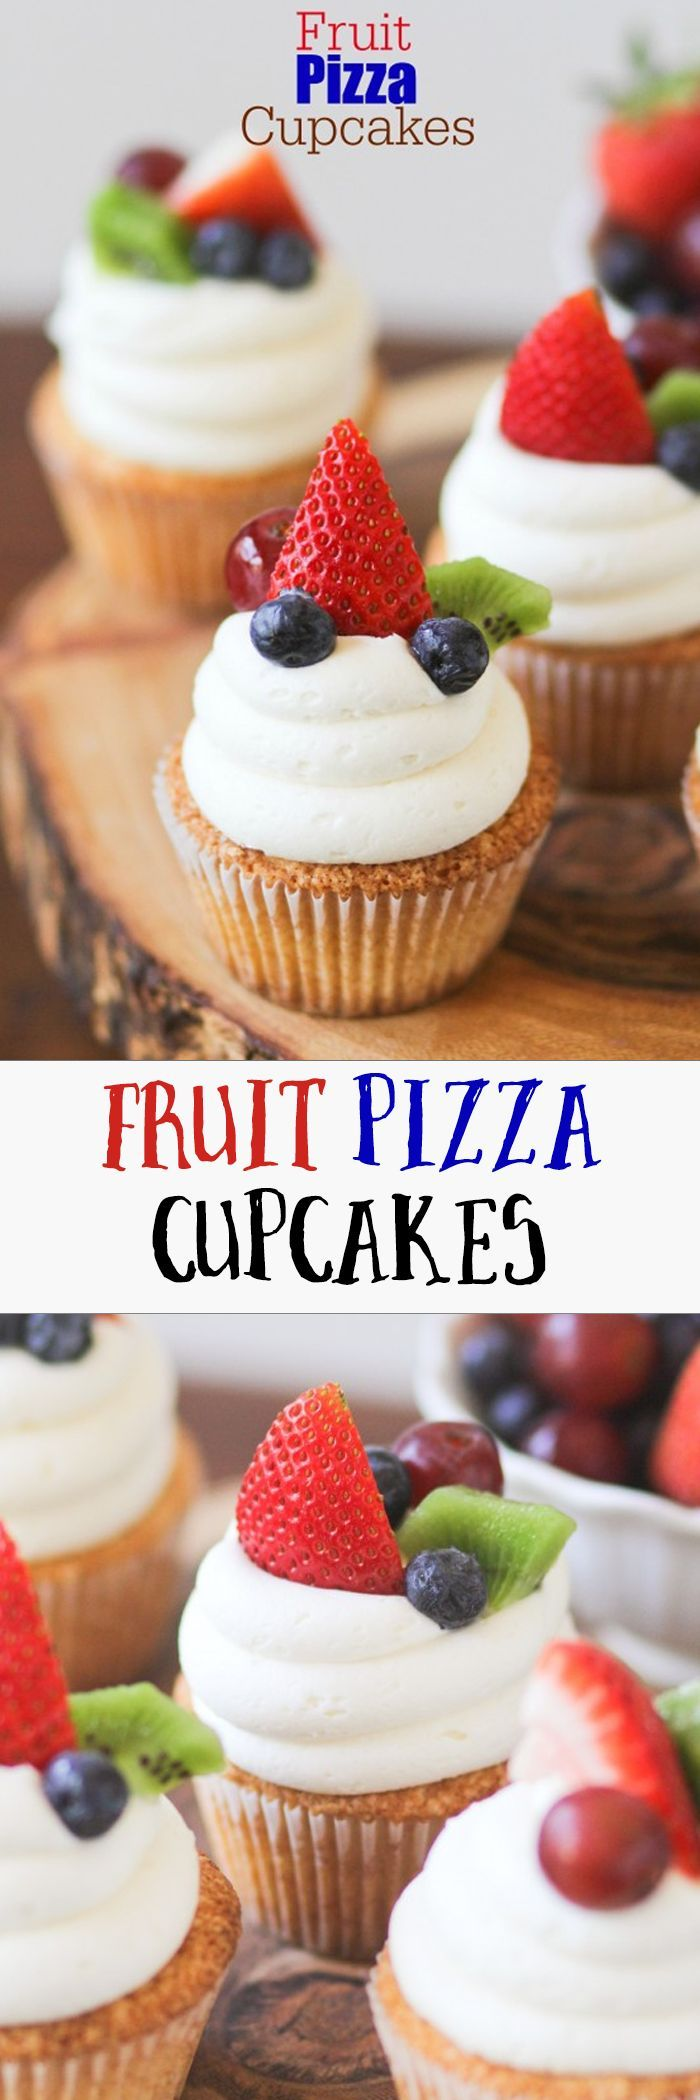 These Fruit Pizza Cupcakes are gorgeous! The cake is light and tastes like a sugar cookie.